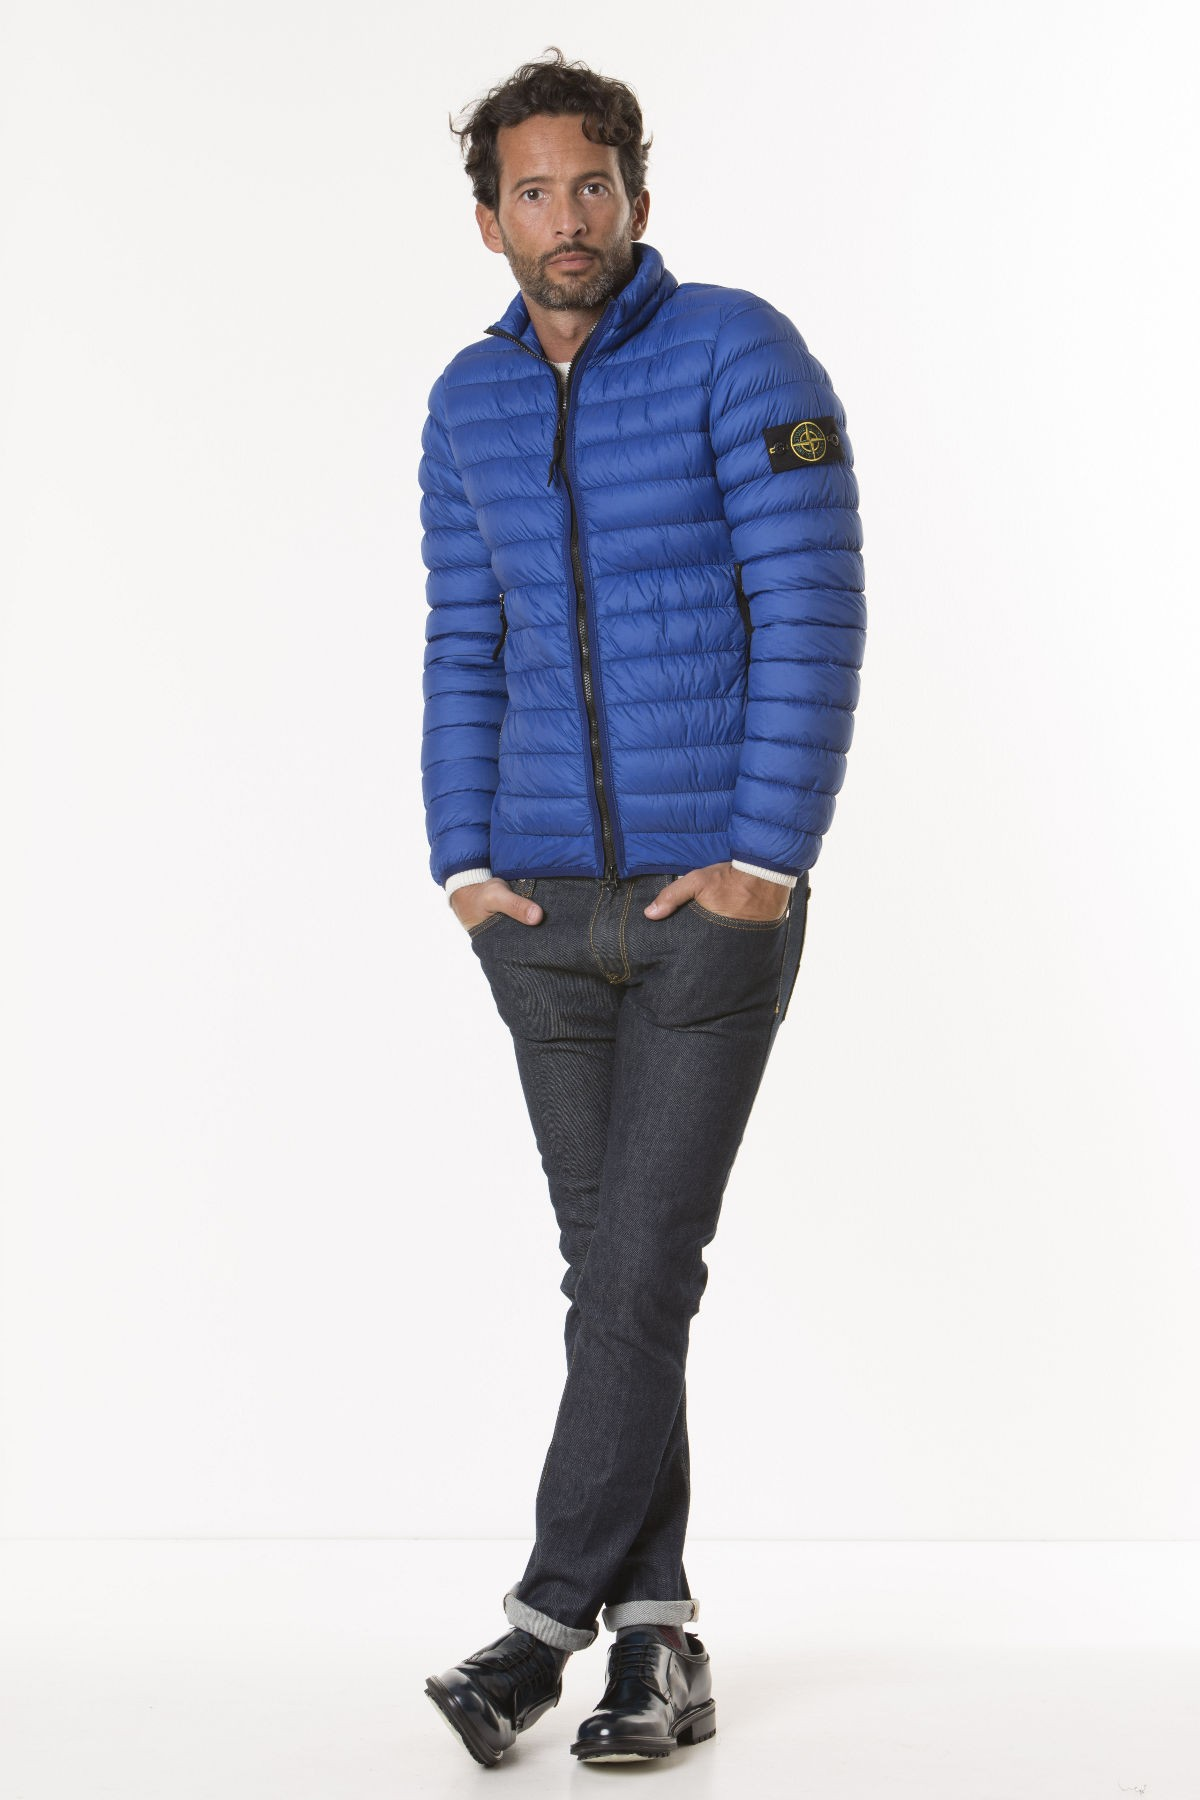 online retailer 308a0 66f56 Piumino GARMENT DYED MICRO YARN DOWN_PACKABLE per uomo STONE ISLAND A/I  17-18